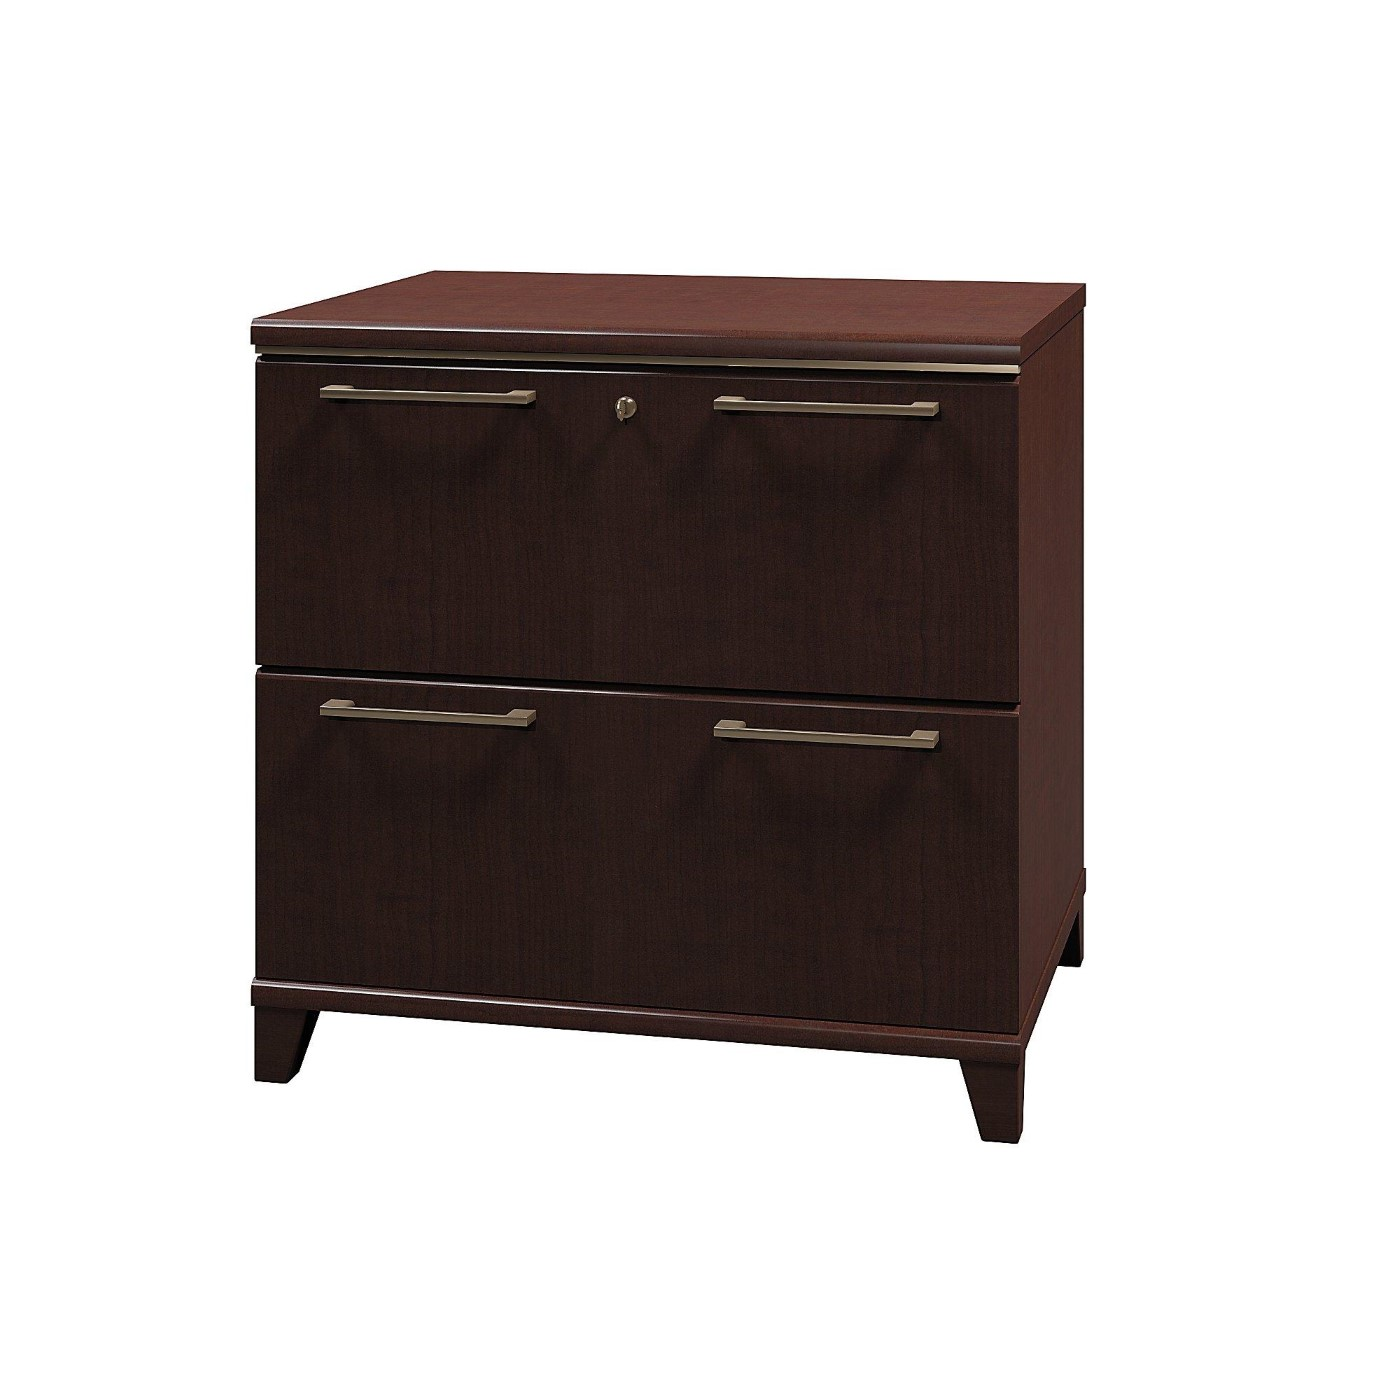 <font color=#c60><b>BUSH BUSINESS FURNITURE ENTERPRISE 30W 2 DRAWER LATERAL FILE CABINET. FREE SHIPPING</font></b>